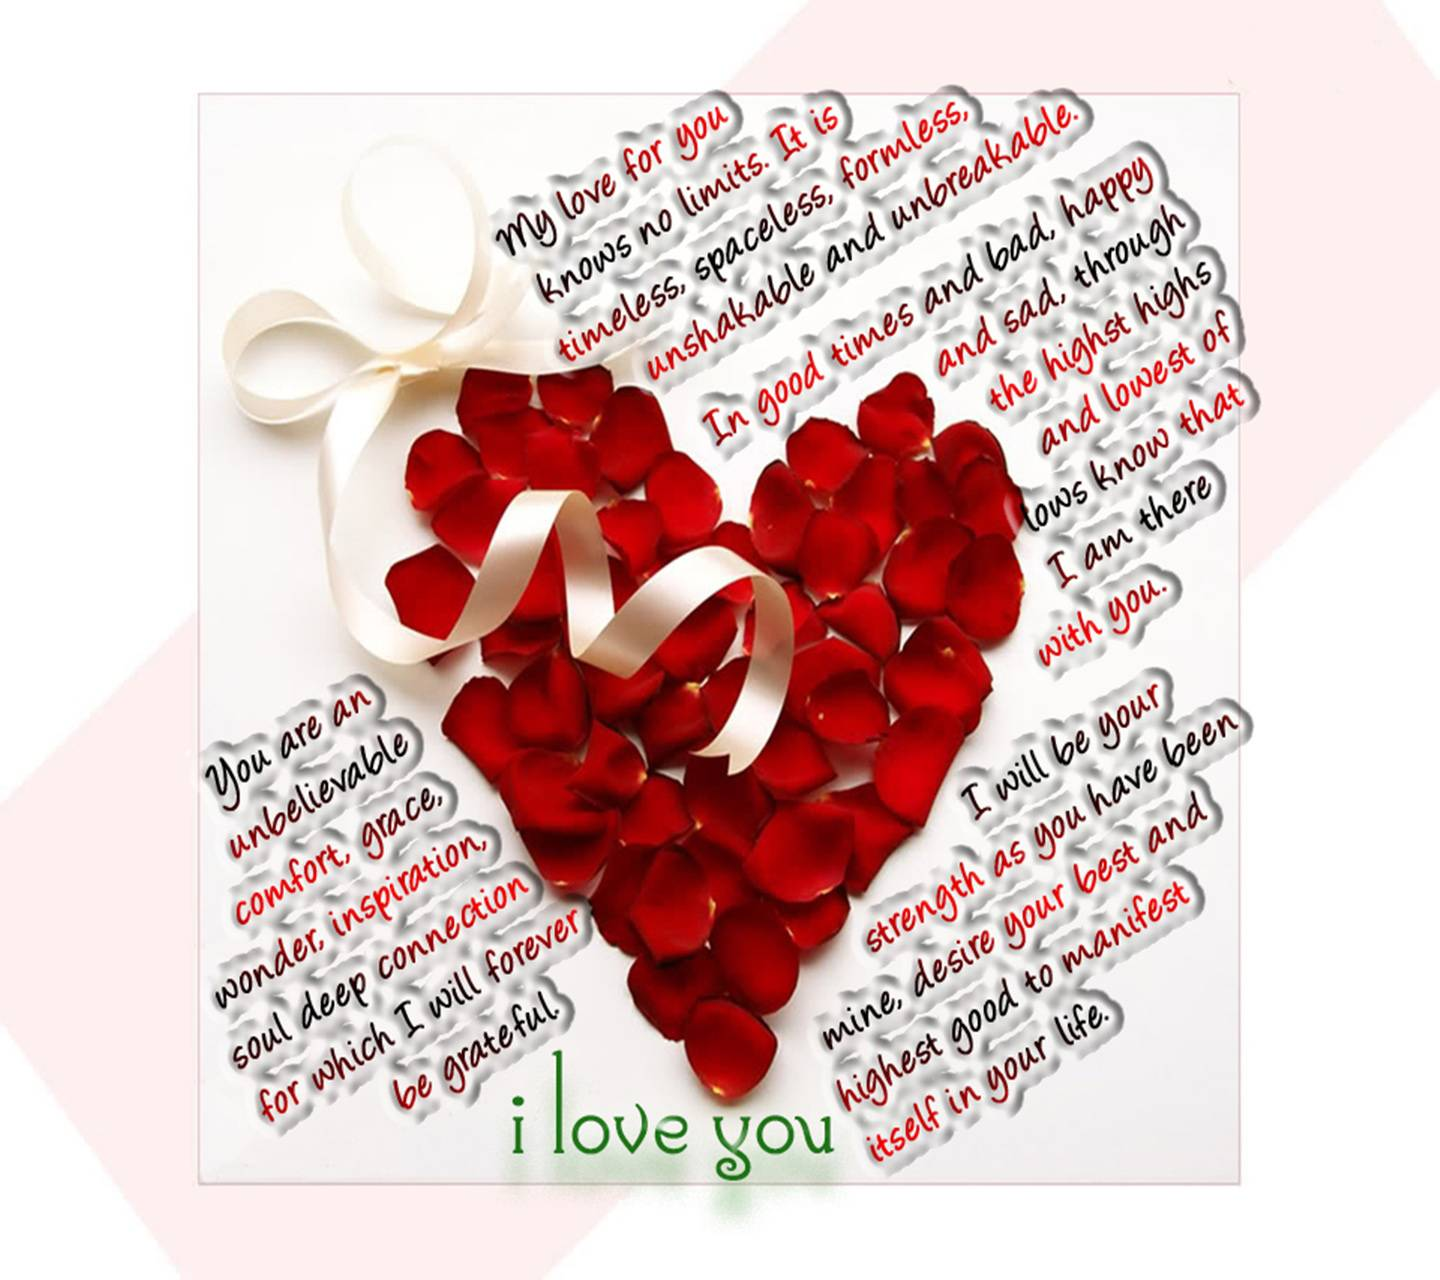 I Love You Wallpaper By Rocky 22 Free On Zedge